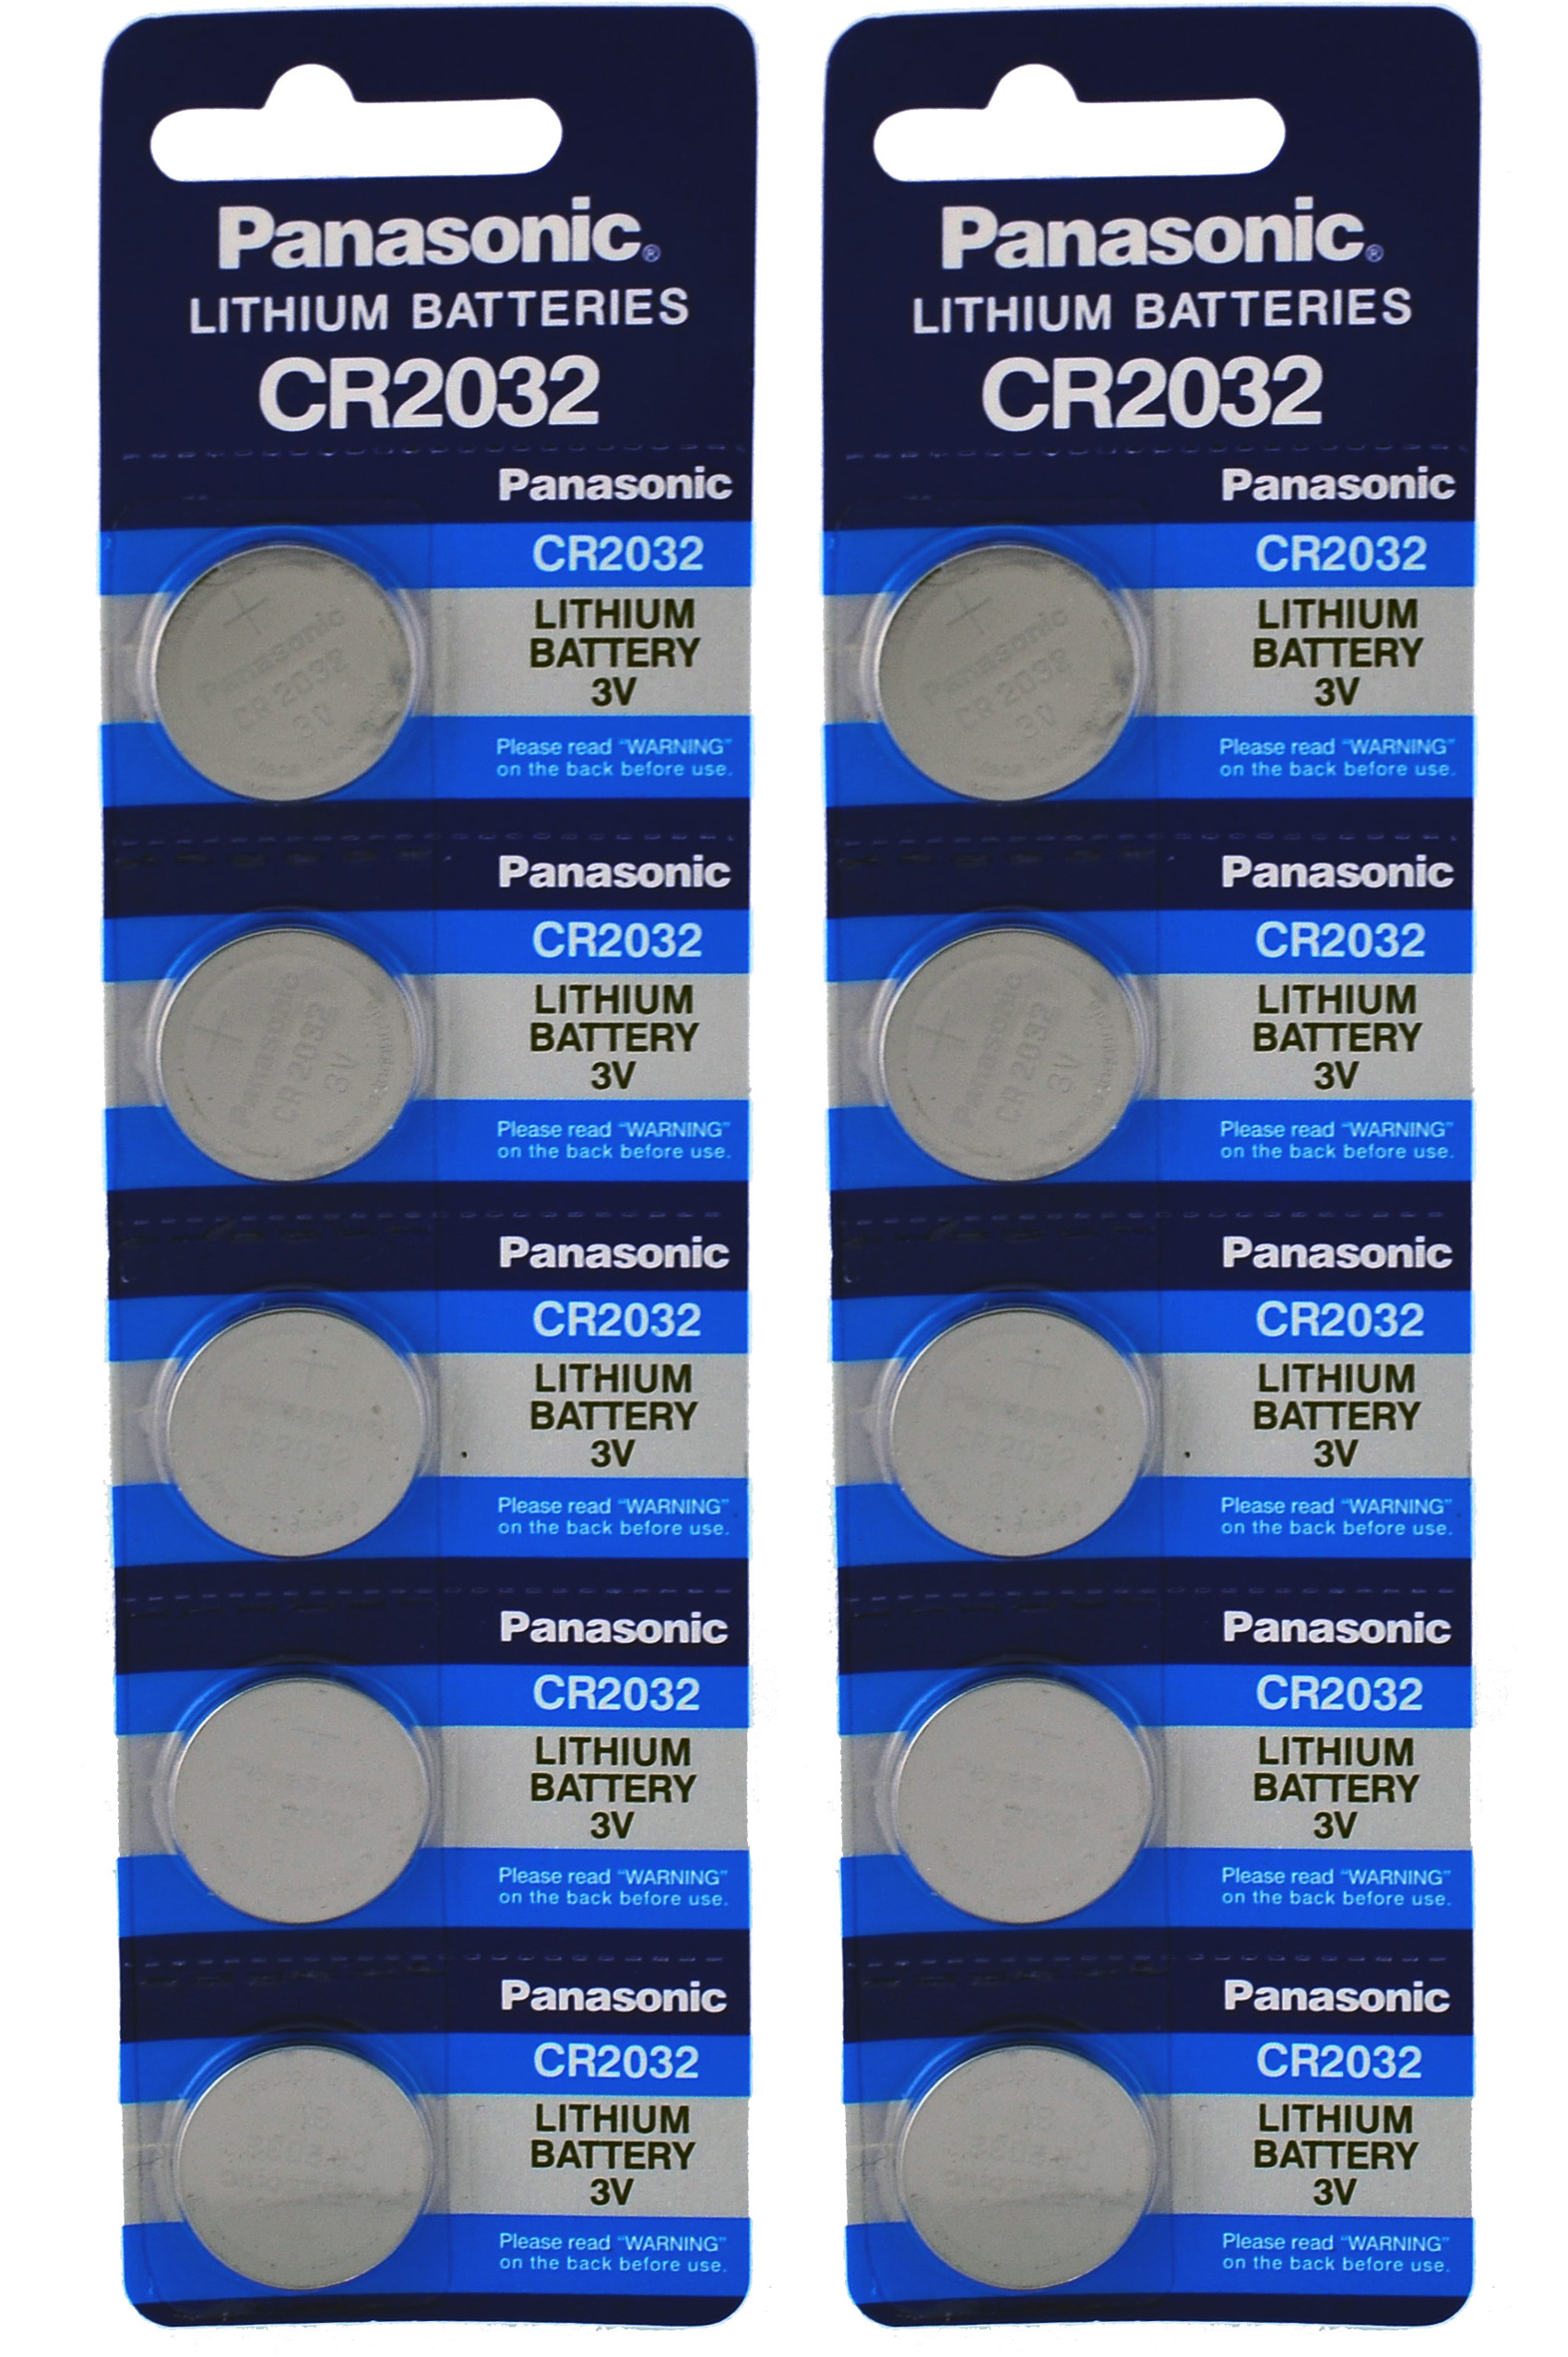 panasonic cr 2032 3v  10 Panasonic CR2032 2032 3V Lithium Coin Cell Batteries (10 ...